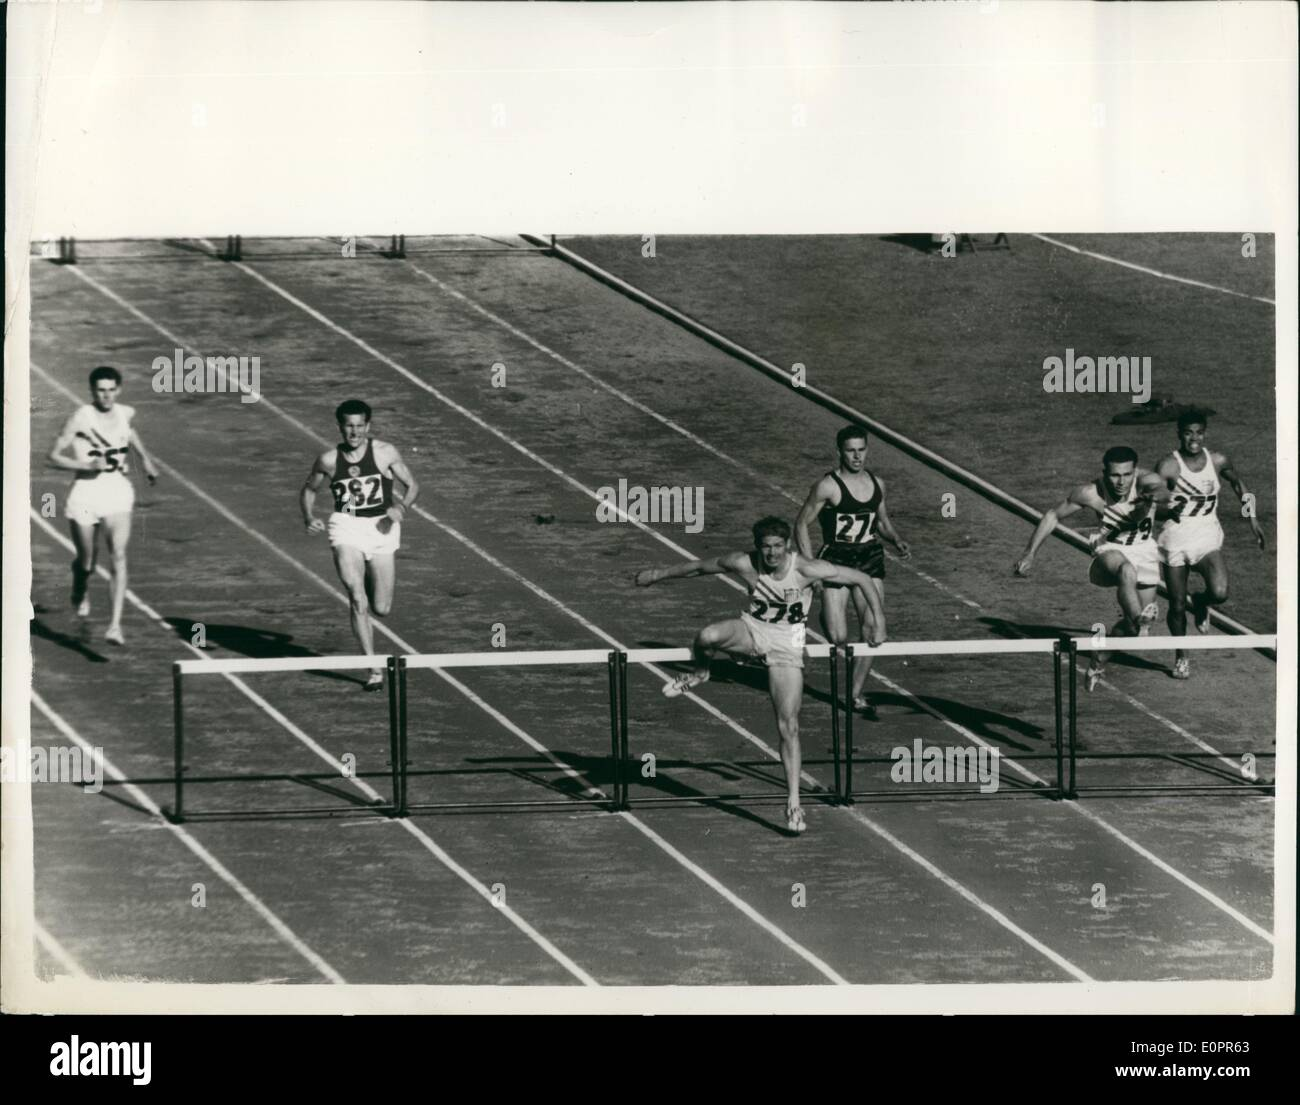 Nov. 11, 1956 - Olympic Games in Melbourne 400 metres Hurdles Final : Photo shows G.Davis (U.S.A.), No. 278, leads - Stock Image